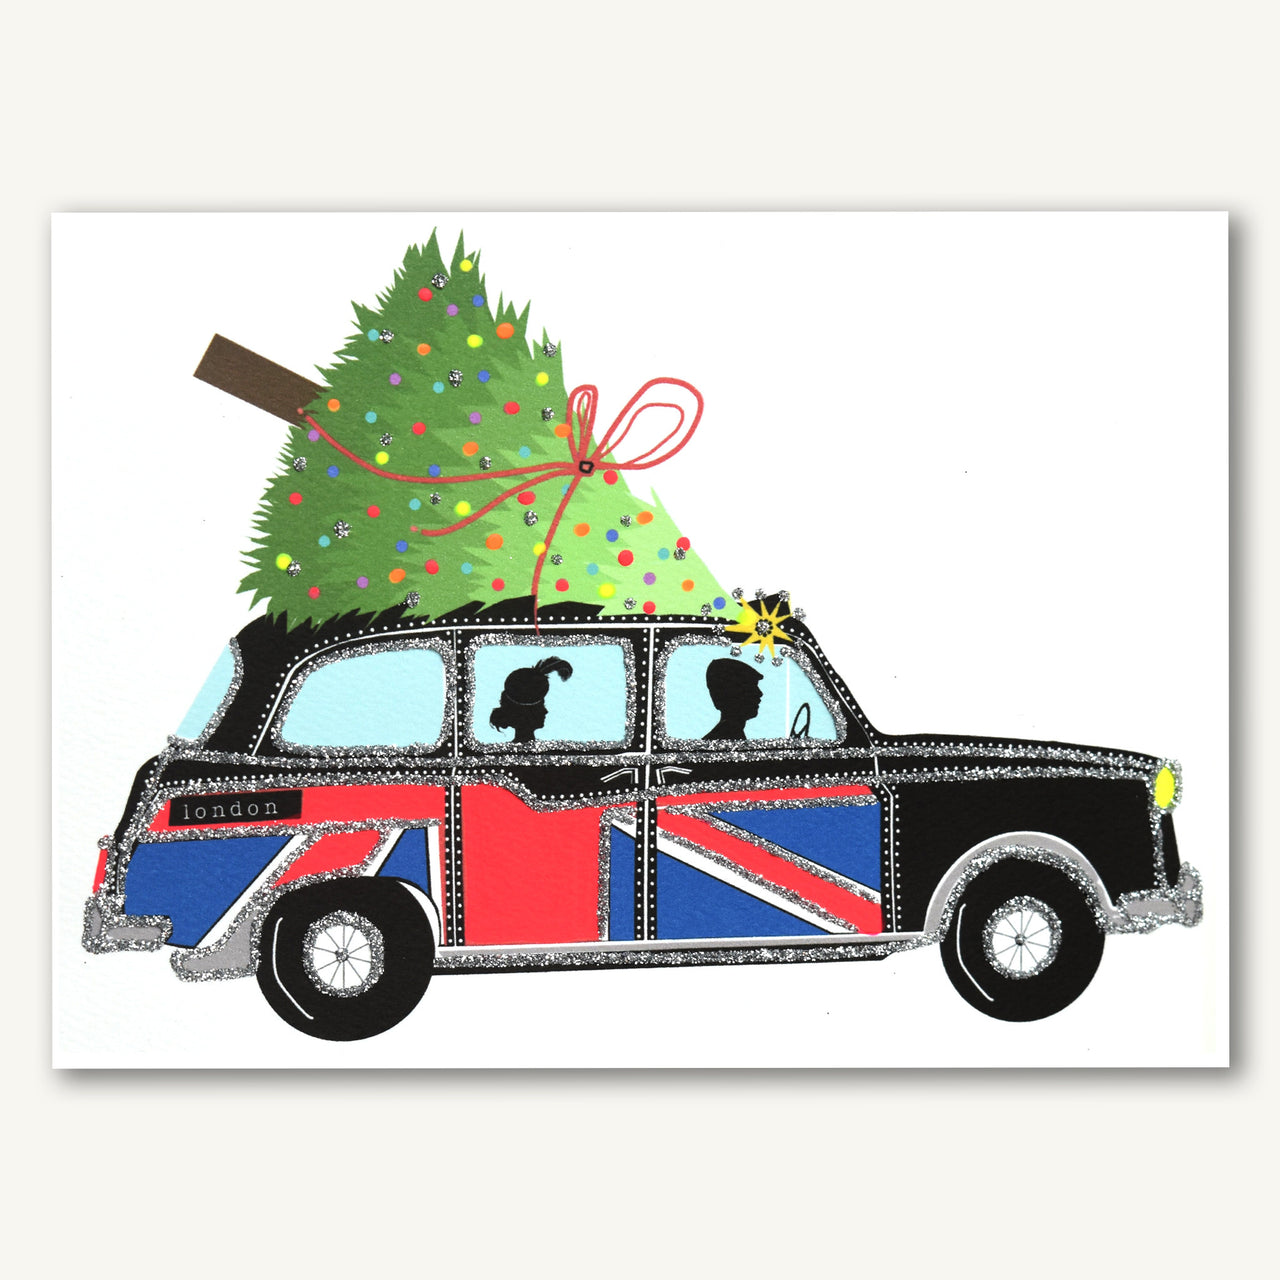 London Holiday Taxi